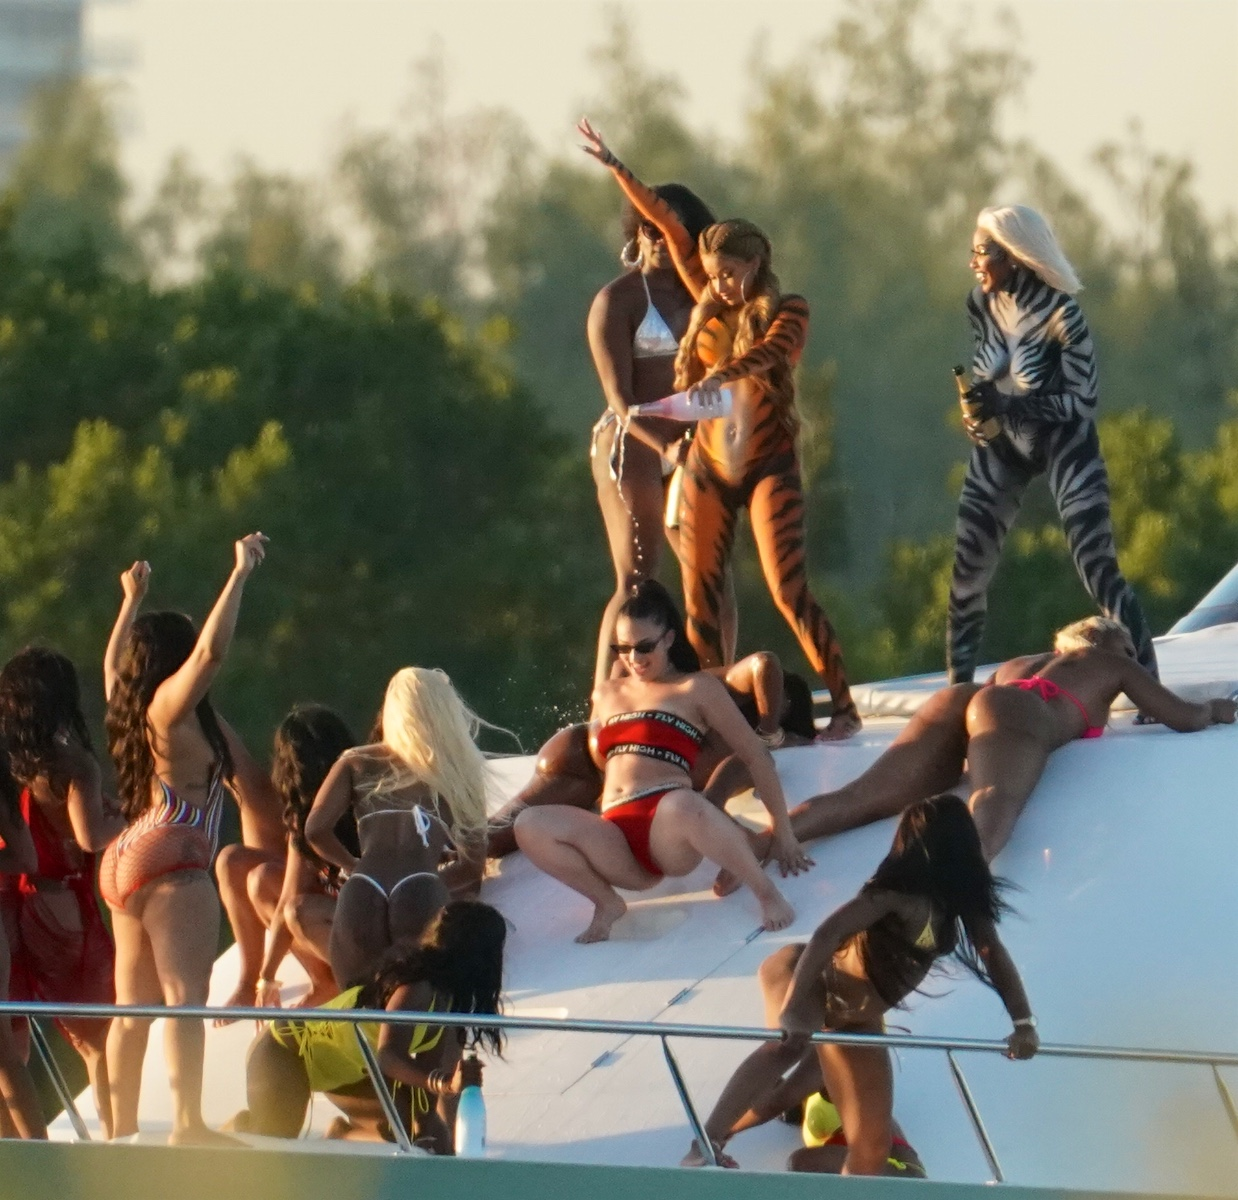 body-painted-cardi-b-goes-wild-on-yacht-as-she-films-video-while-splashing-champagne-2